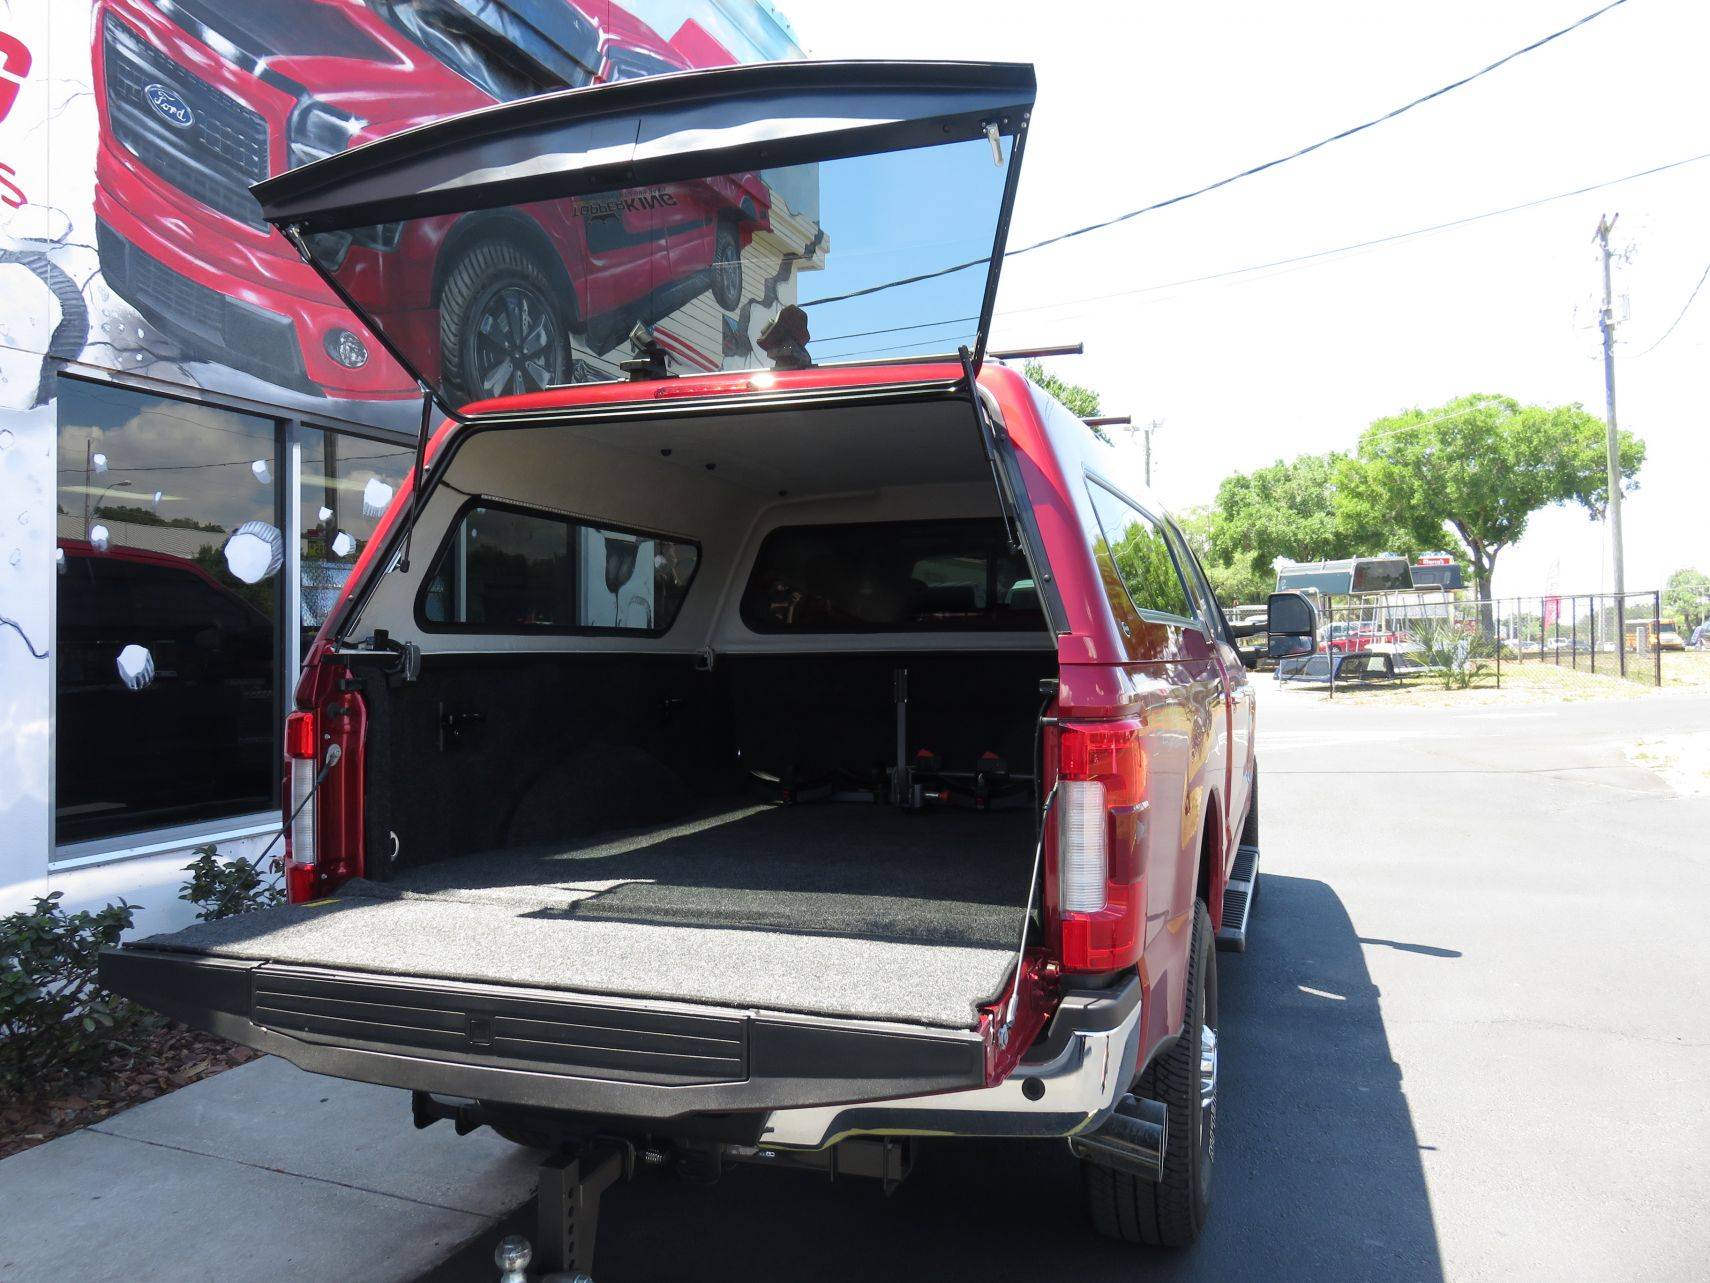 2018 Ford F250 with Ranch Echo, Roof Racks, BedRug, and Custom Hitch by TopperKING in Brandon, FL 813-689-2449 or Clearwater, FL 727-530-9066. Call today!